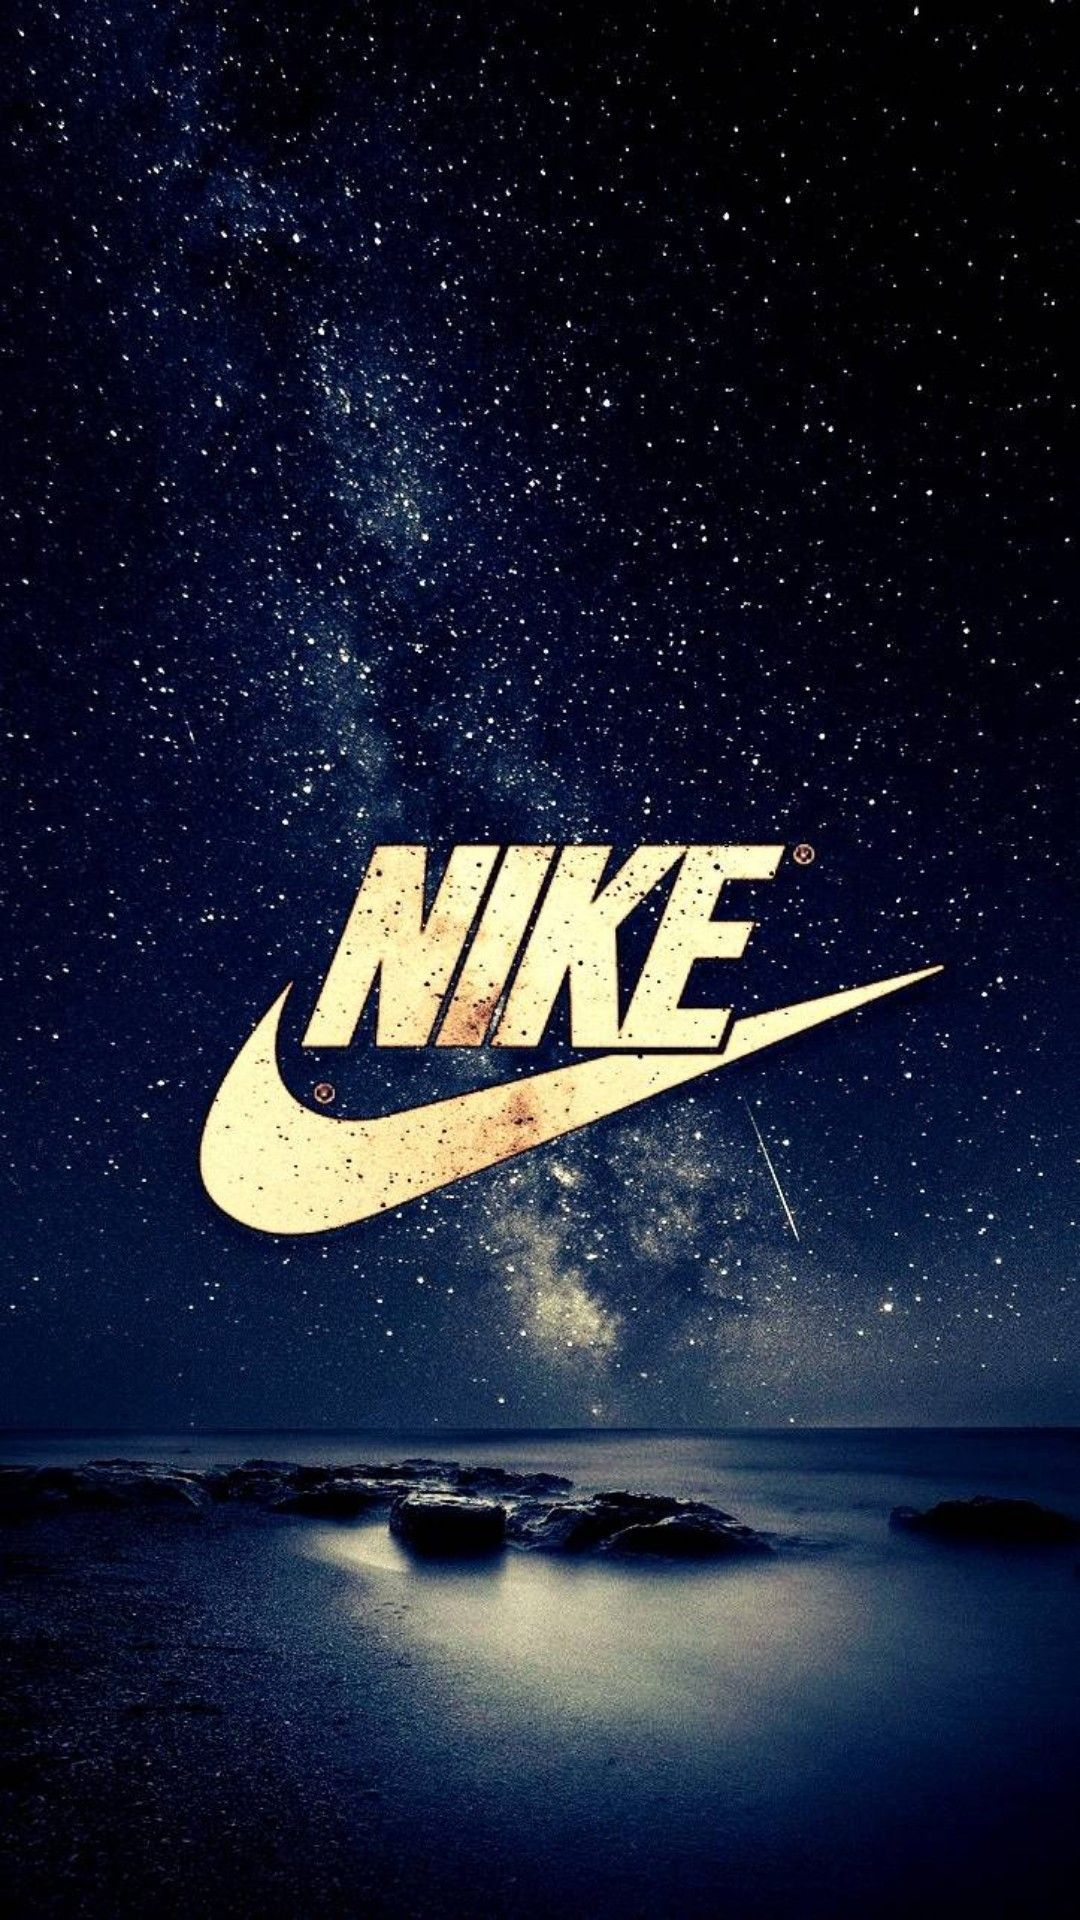 Galaxy Nike Hd Wallpaper Hupages Download Iphone Wallpapers Nike Wallpaper Nike Wallpaper Iphone Nike Logo Wallpapers